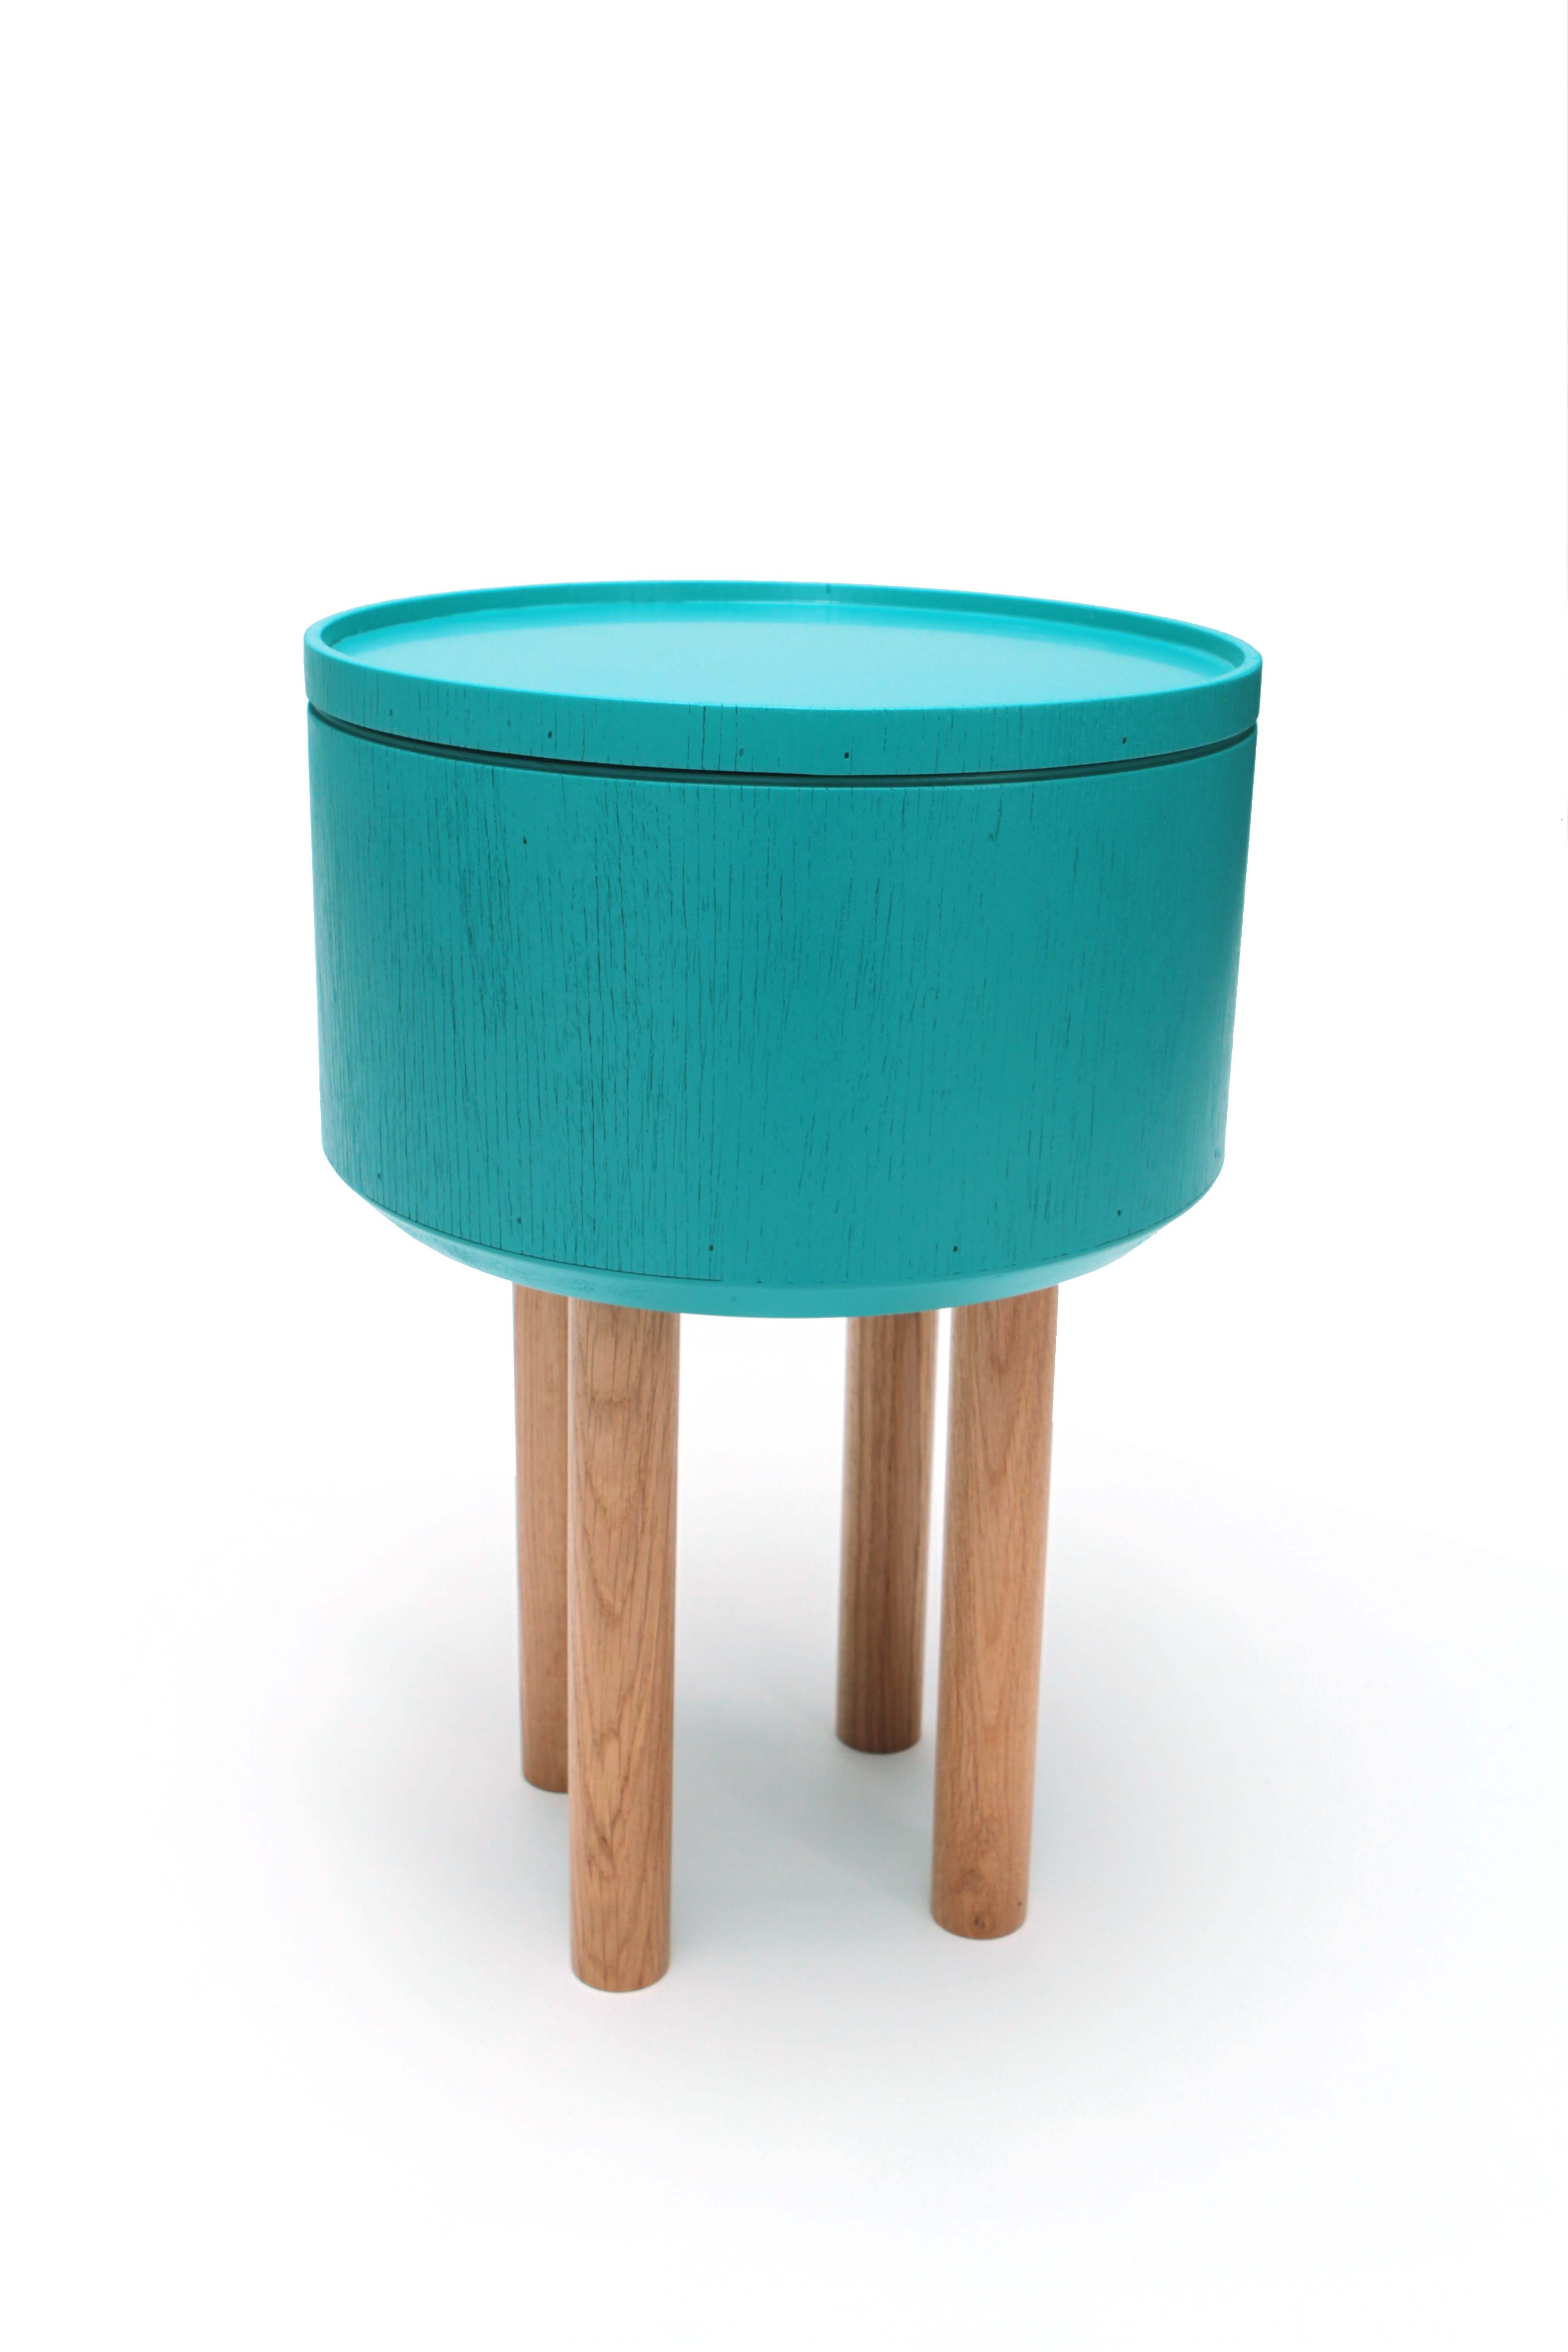 Table Dappoint Bellila Chez Thecoolrepubliccom 360 Home